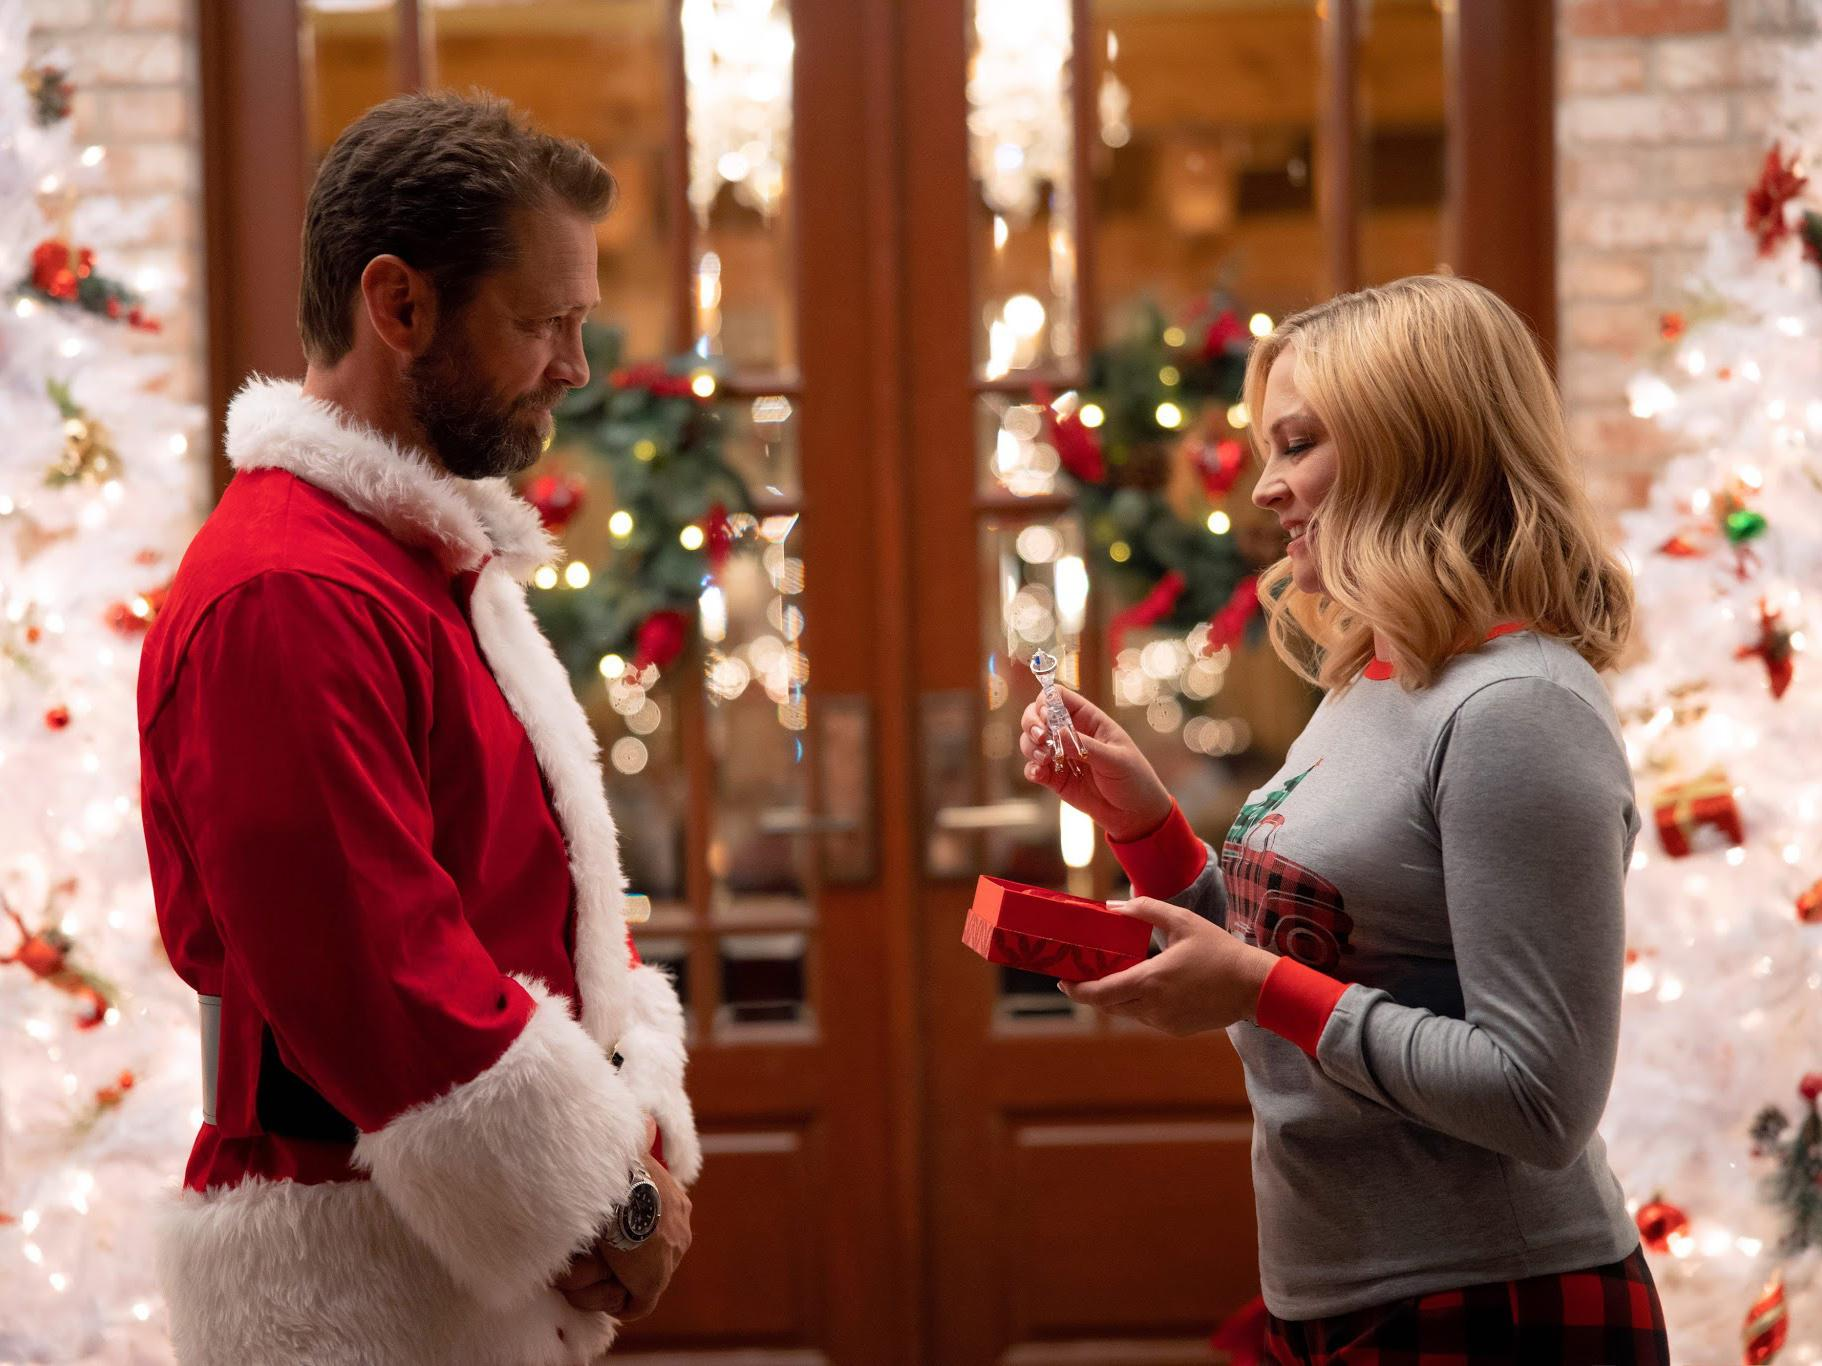 Jason Priestley and Melissa Joan Hart in promotional photo from Dear Christmas